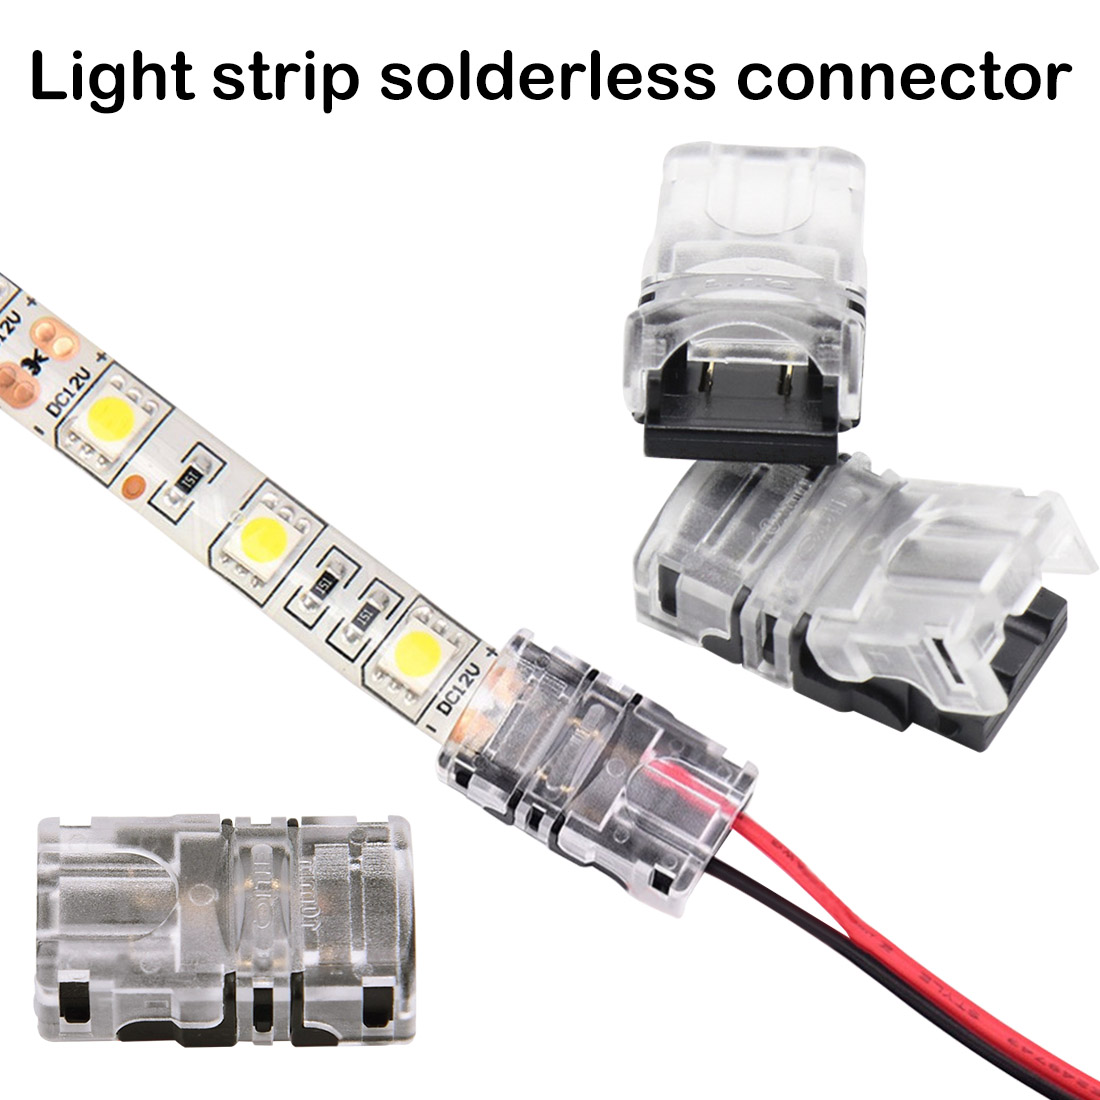 10mm 5050 LED Strip Connector 2 Pin for Waterproof Single Color Tape Light Snap Splicer10mm 5050 LED Strip Connector 2 Pin for Waterproof Single Color Tape Light Snap Splicer